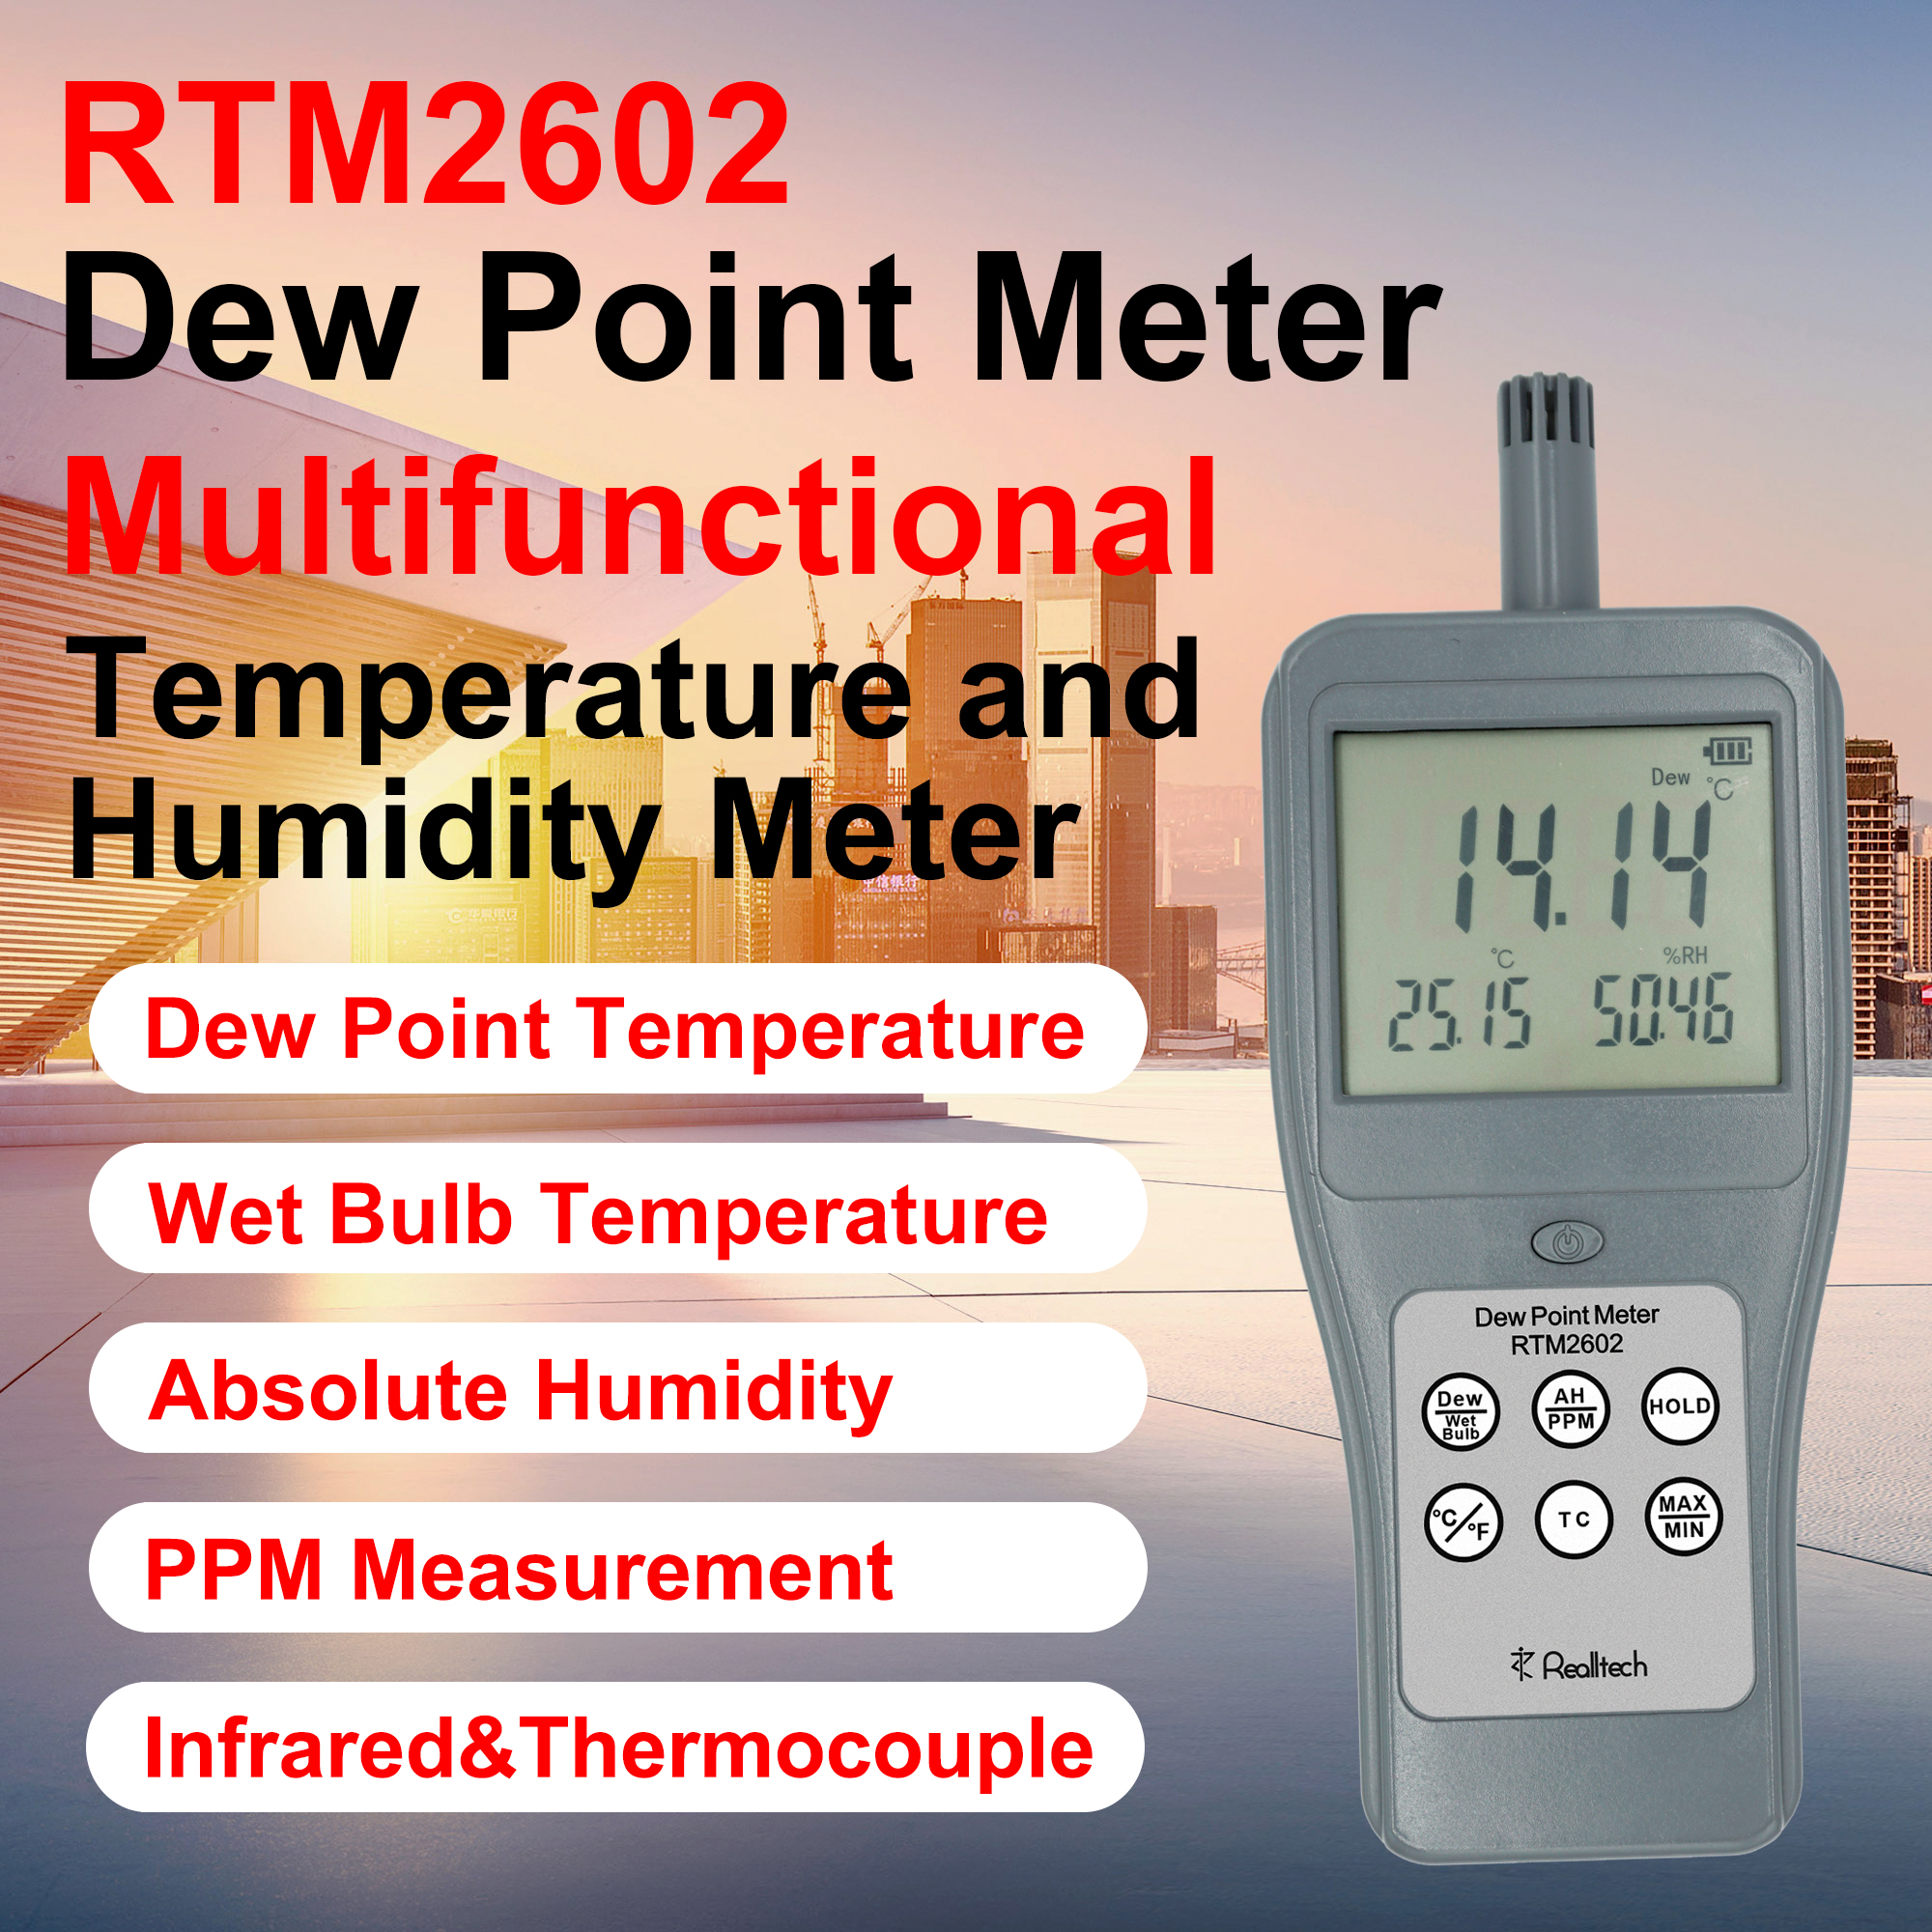 RTM2602 High Accuracy of Professional Digital Dew Point Meter with Infrared and Thermocouple measuring